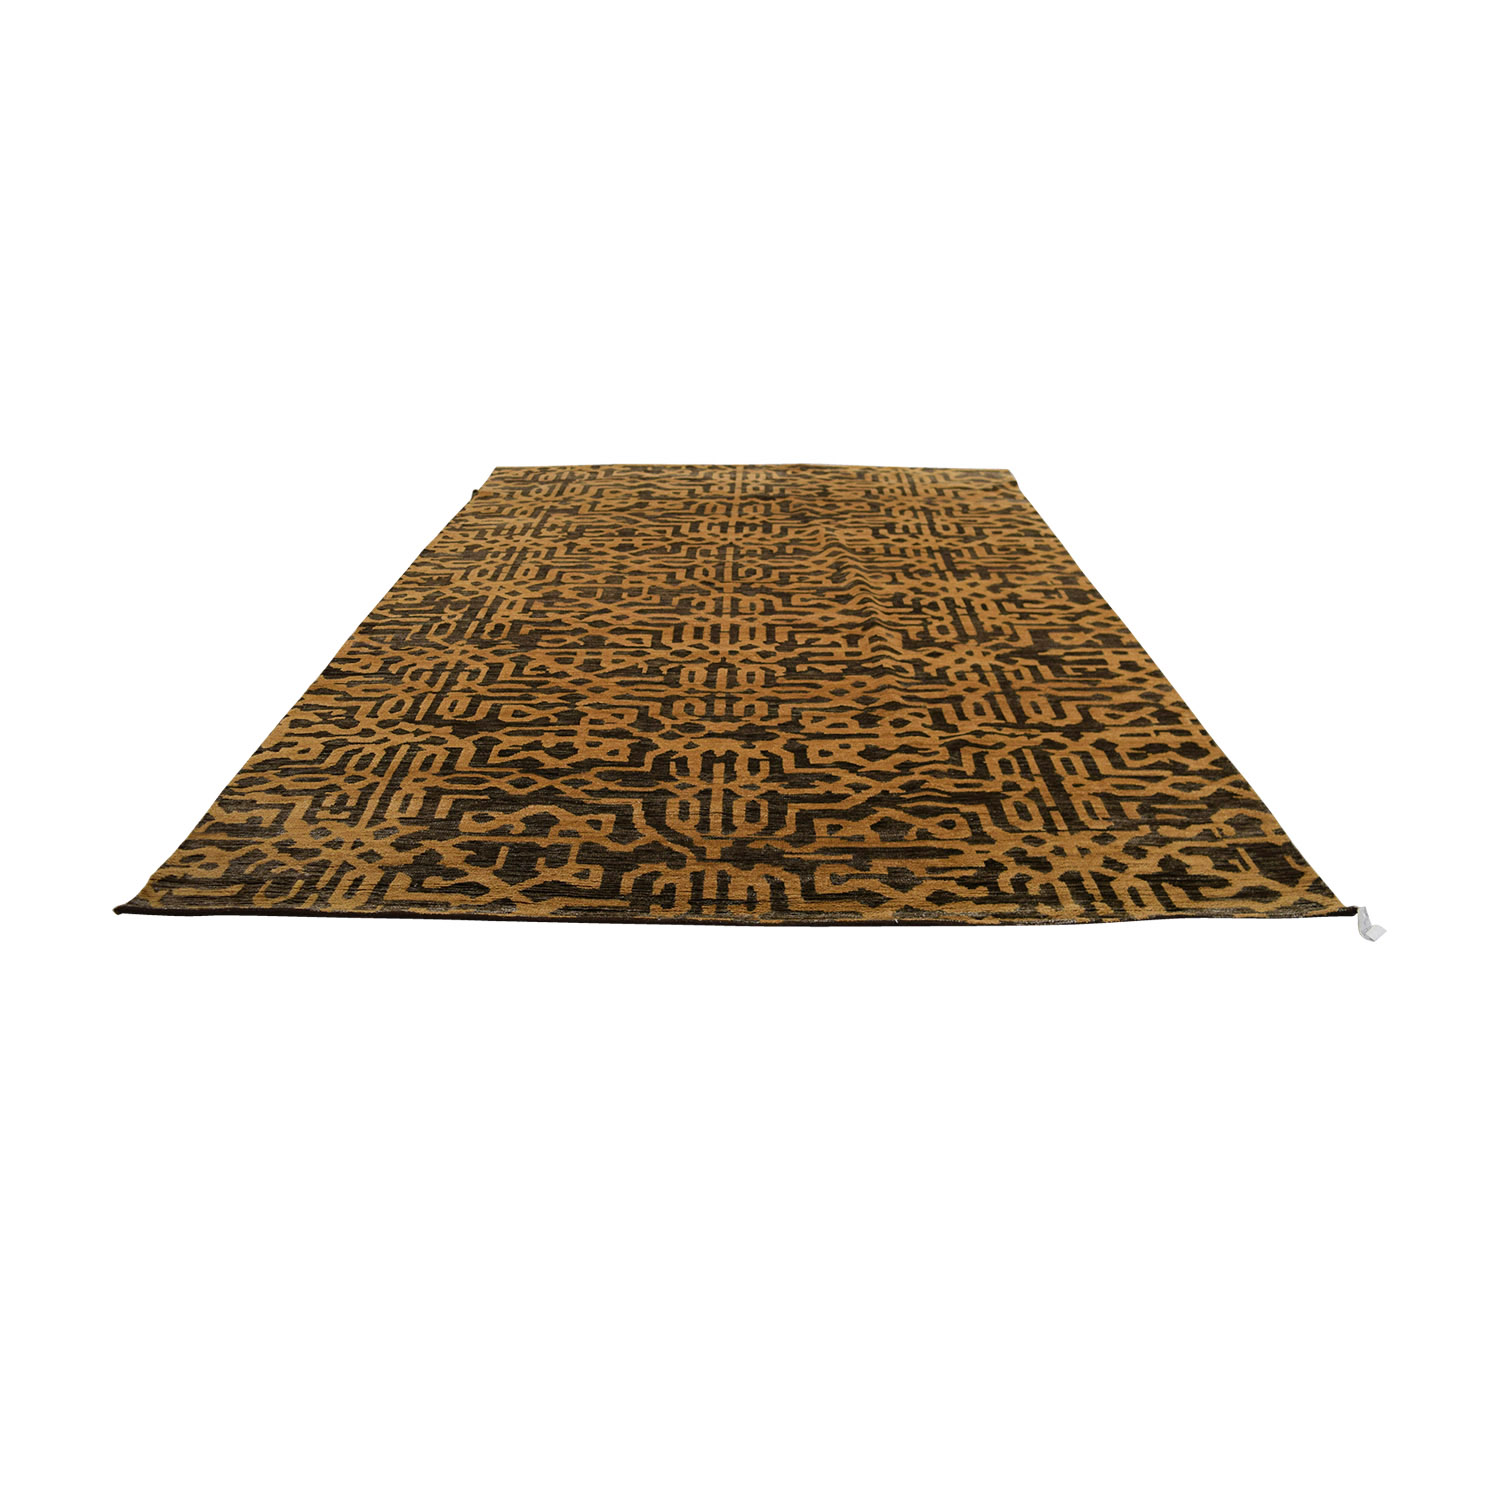 Obeetee Obeetee Hand Knotted Brown and Tan Wool Rug on sale